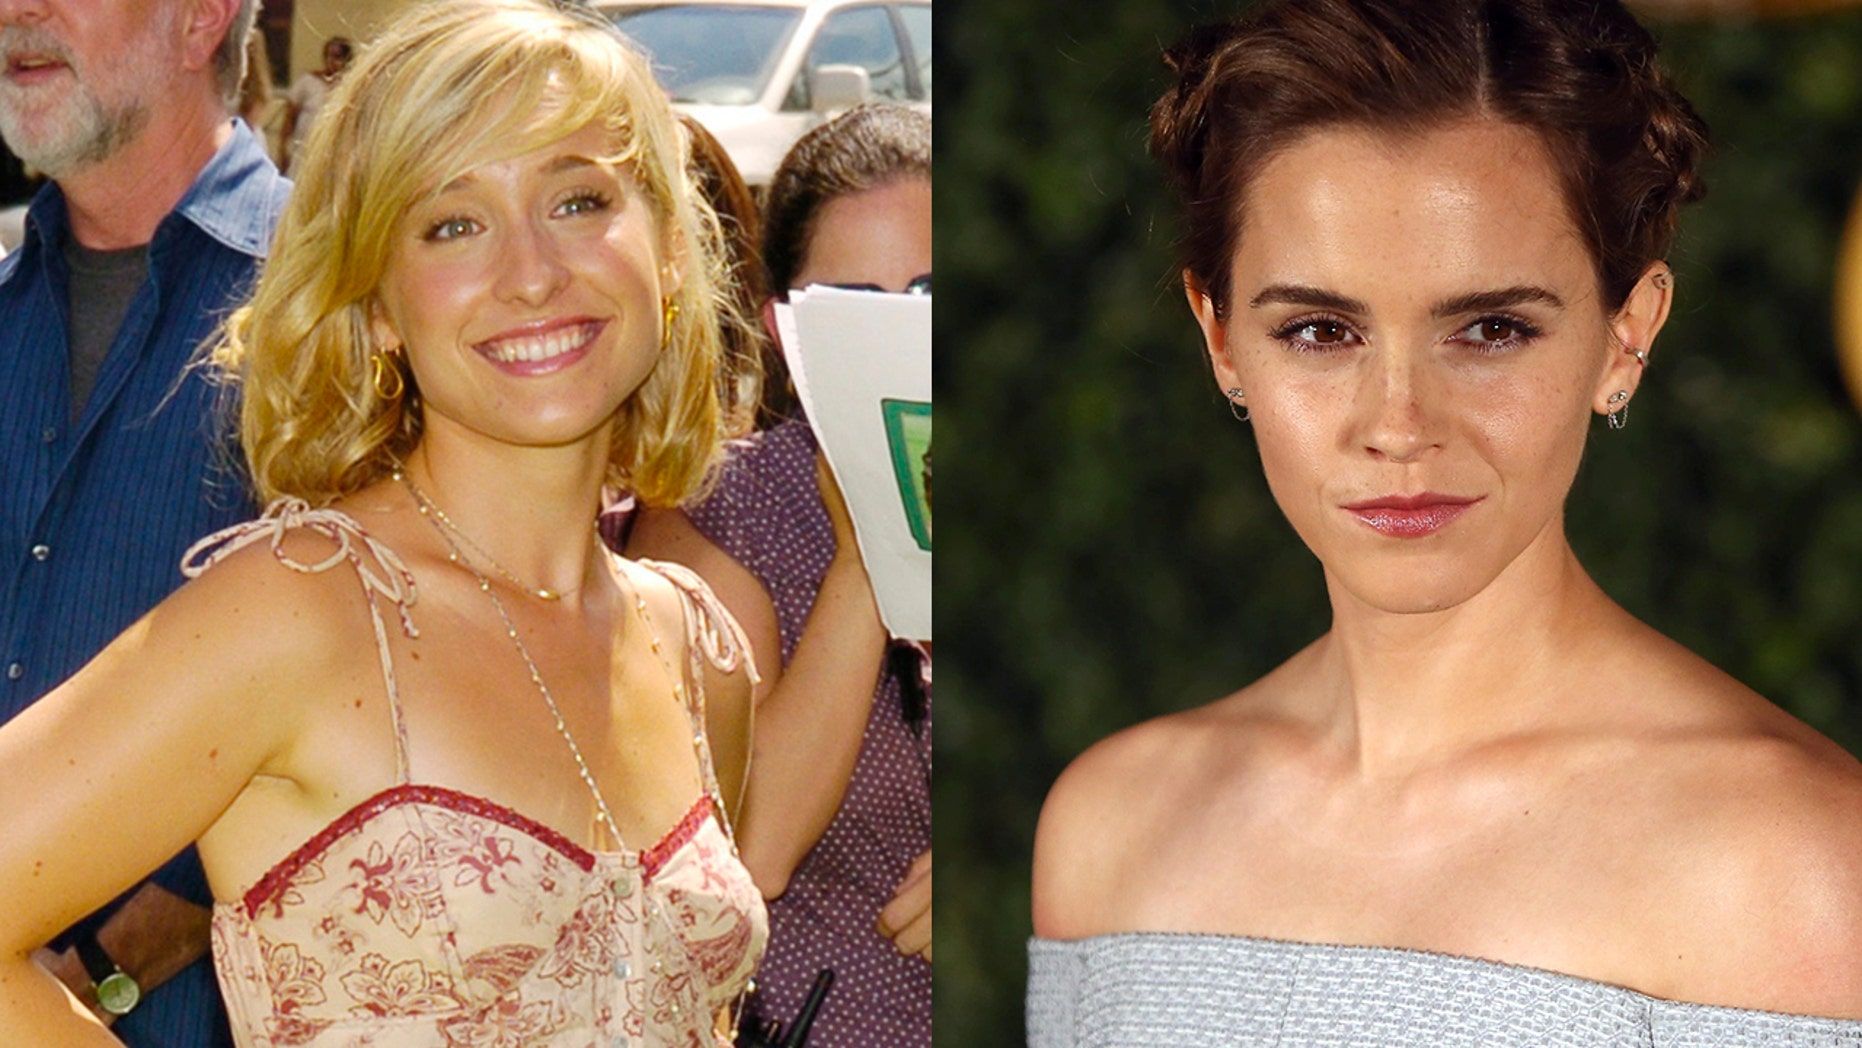 """Allison Mack, left, has been accused of recruiting women to be involved in an alleged sex cult. She seemingly tried to get """"Harry Potter"""" star Emma Watson involved with the controversial organization."""